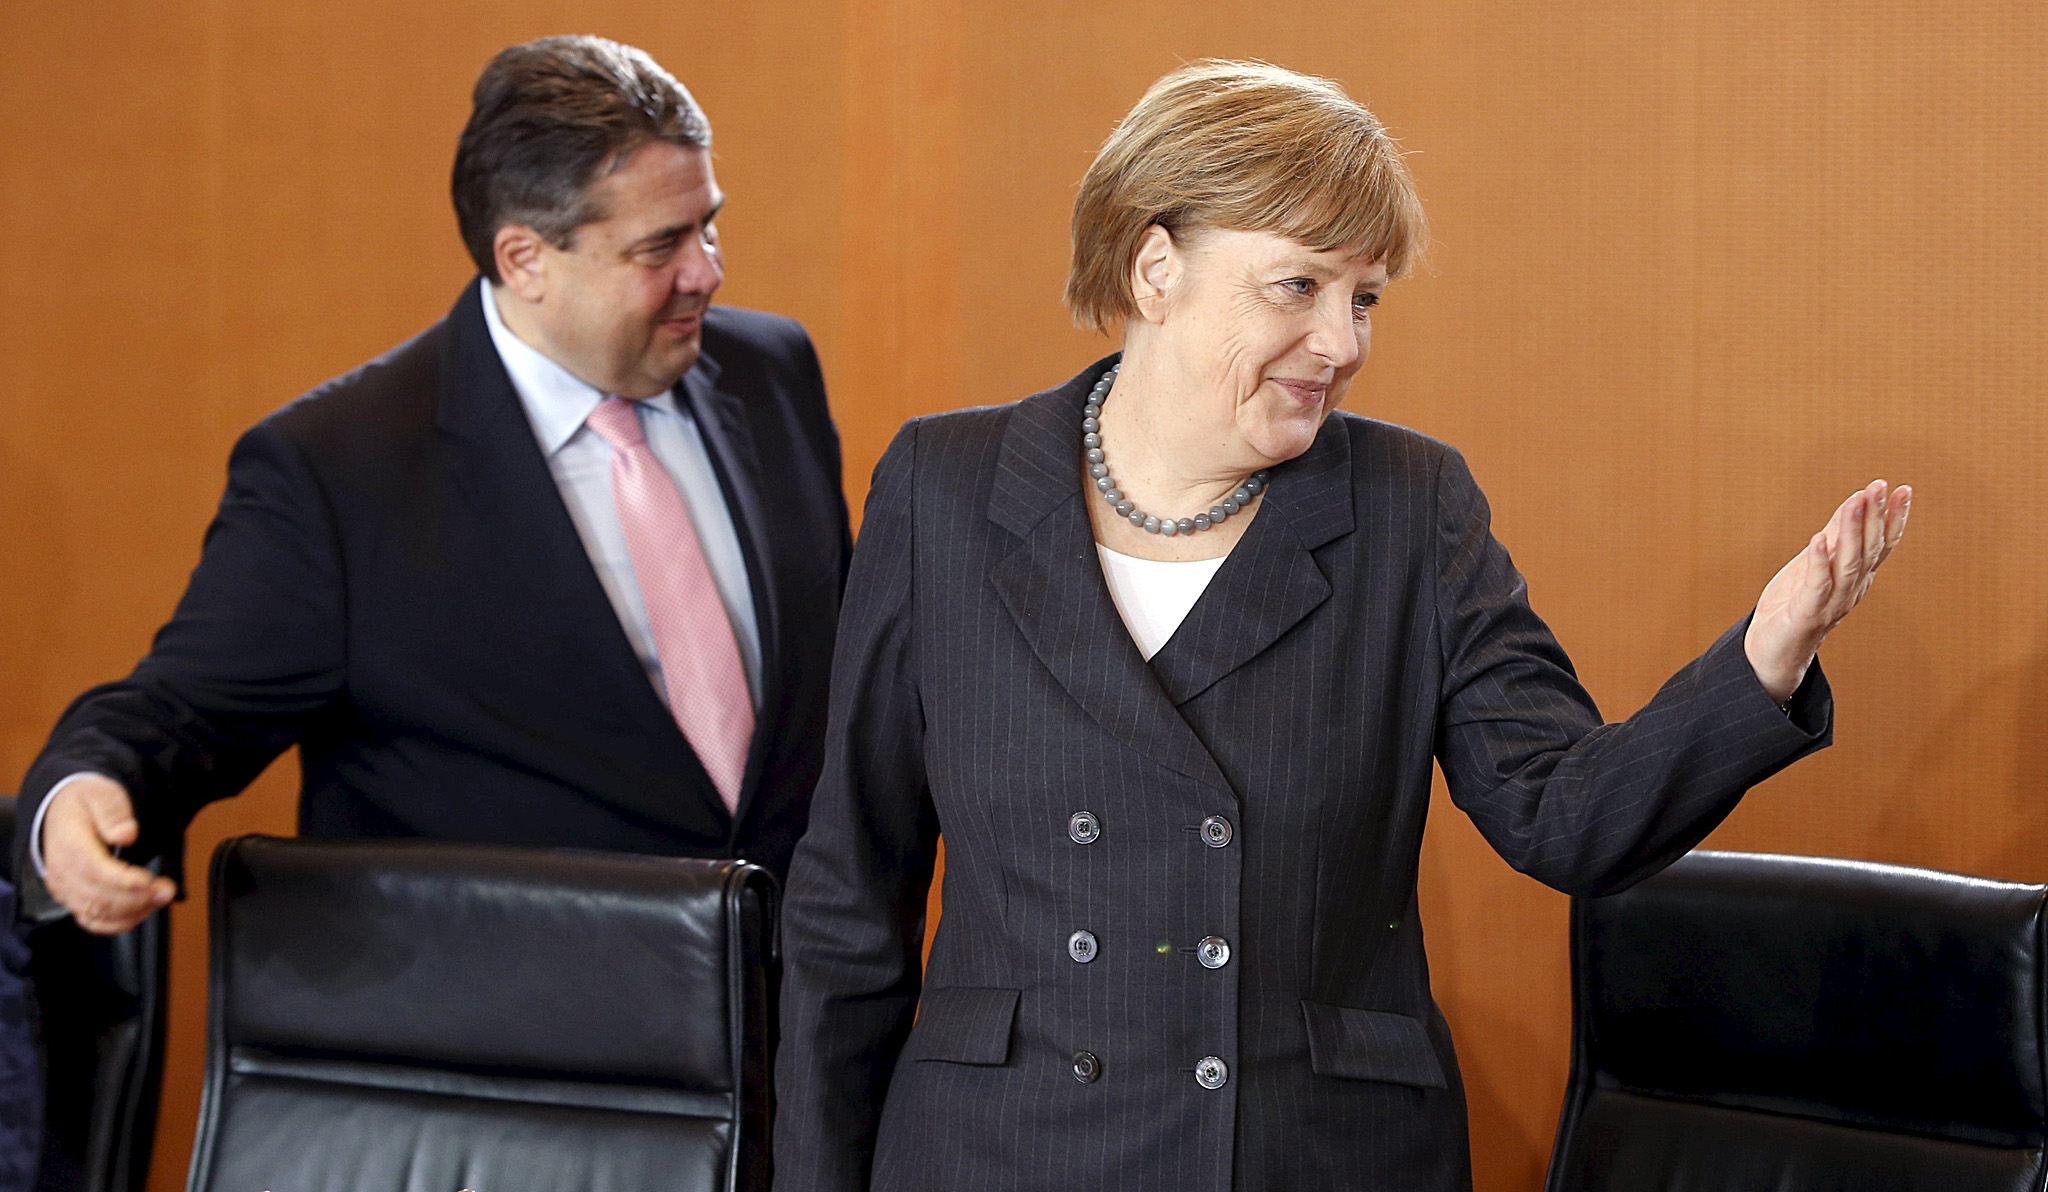 German Chancellor Merkel and Economy Minister Gabriel arrive at a cabinet meeting at the Chancellery in Berlin...German Chancellor Angela Merkel (R) and Economy Minister Sigmar Gabriel arrive at a cabinet meeting at the Chancellery in Berlin, April 1, 2015. Merkel's cabinet signed off on a draft law on Wednesday that imposes an effective ban on the controversial technique of fracking for shale gas.      REUTERS/Fabrizio Bensch